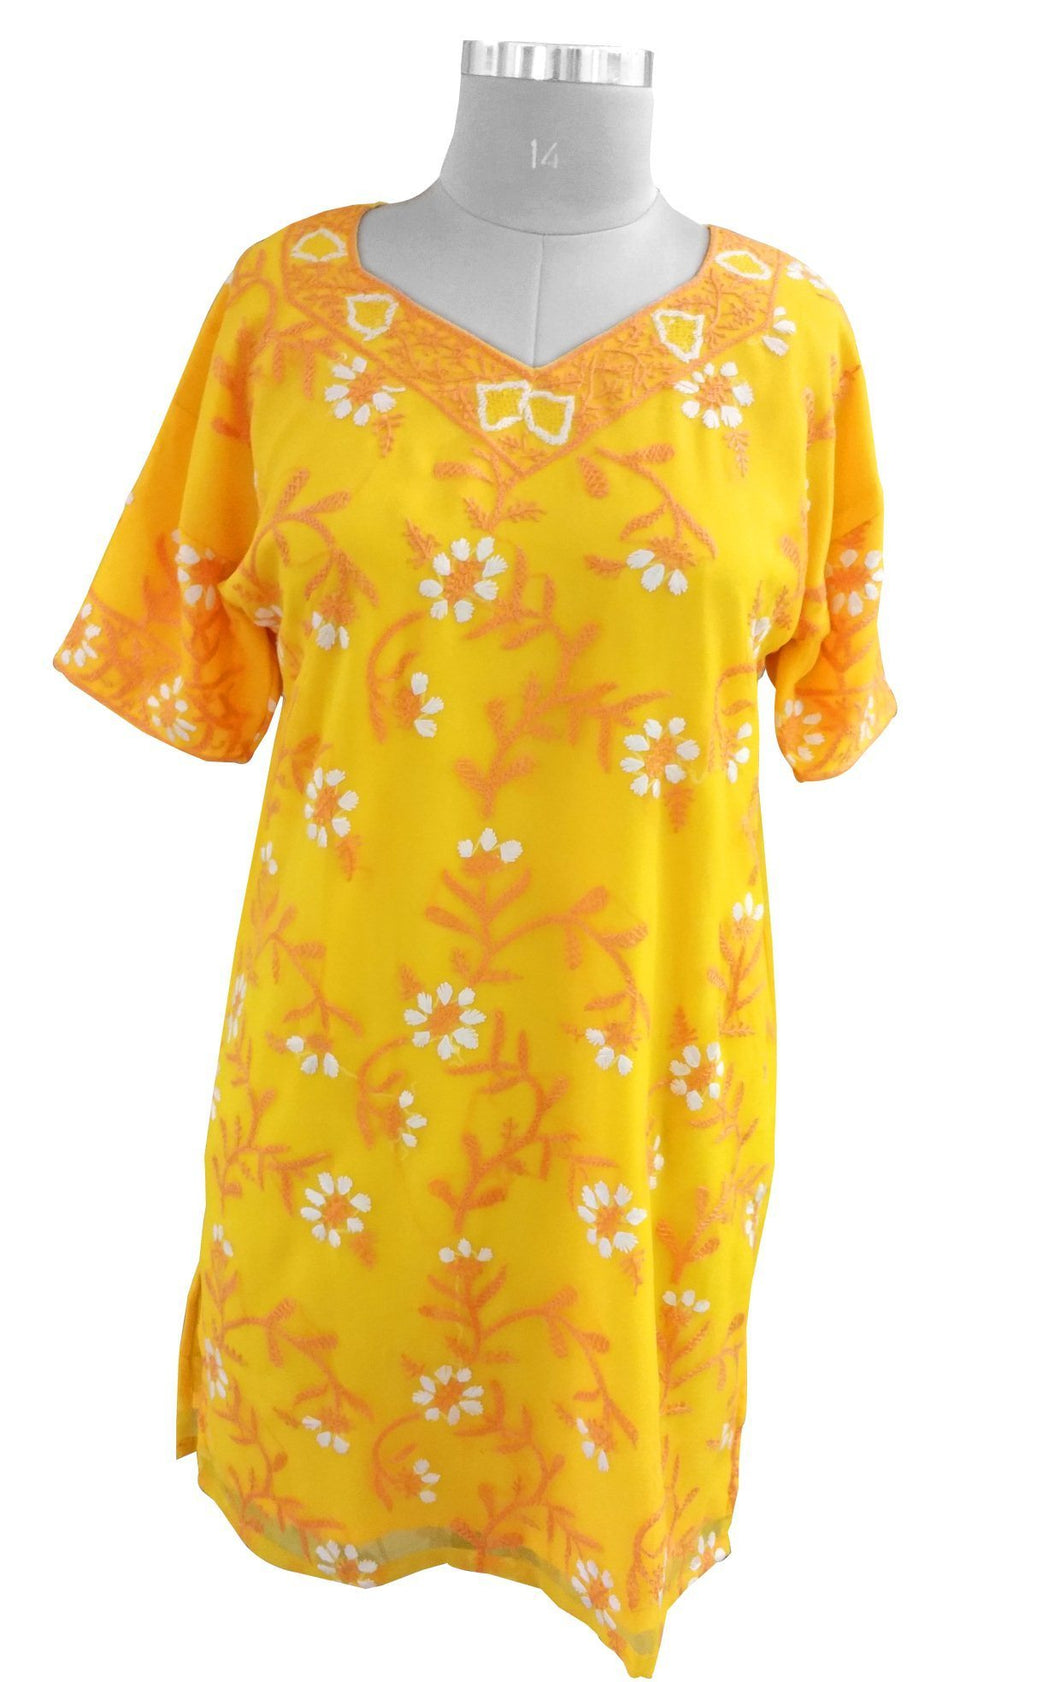 Yellow Chiffon Chikan work Stitched Kurta Dress Size 42 SC552 - Ethnic's By Anvi Creations